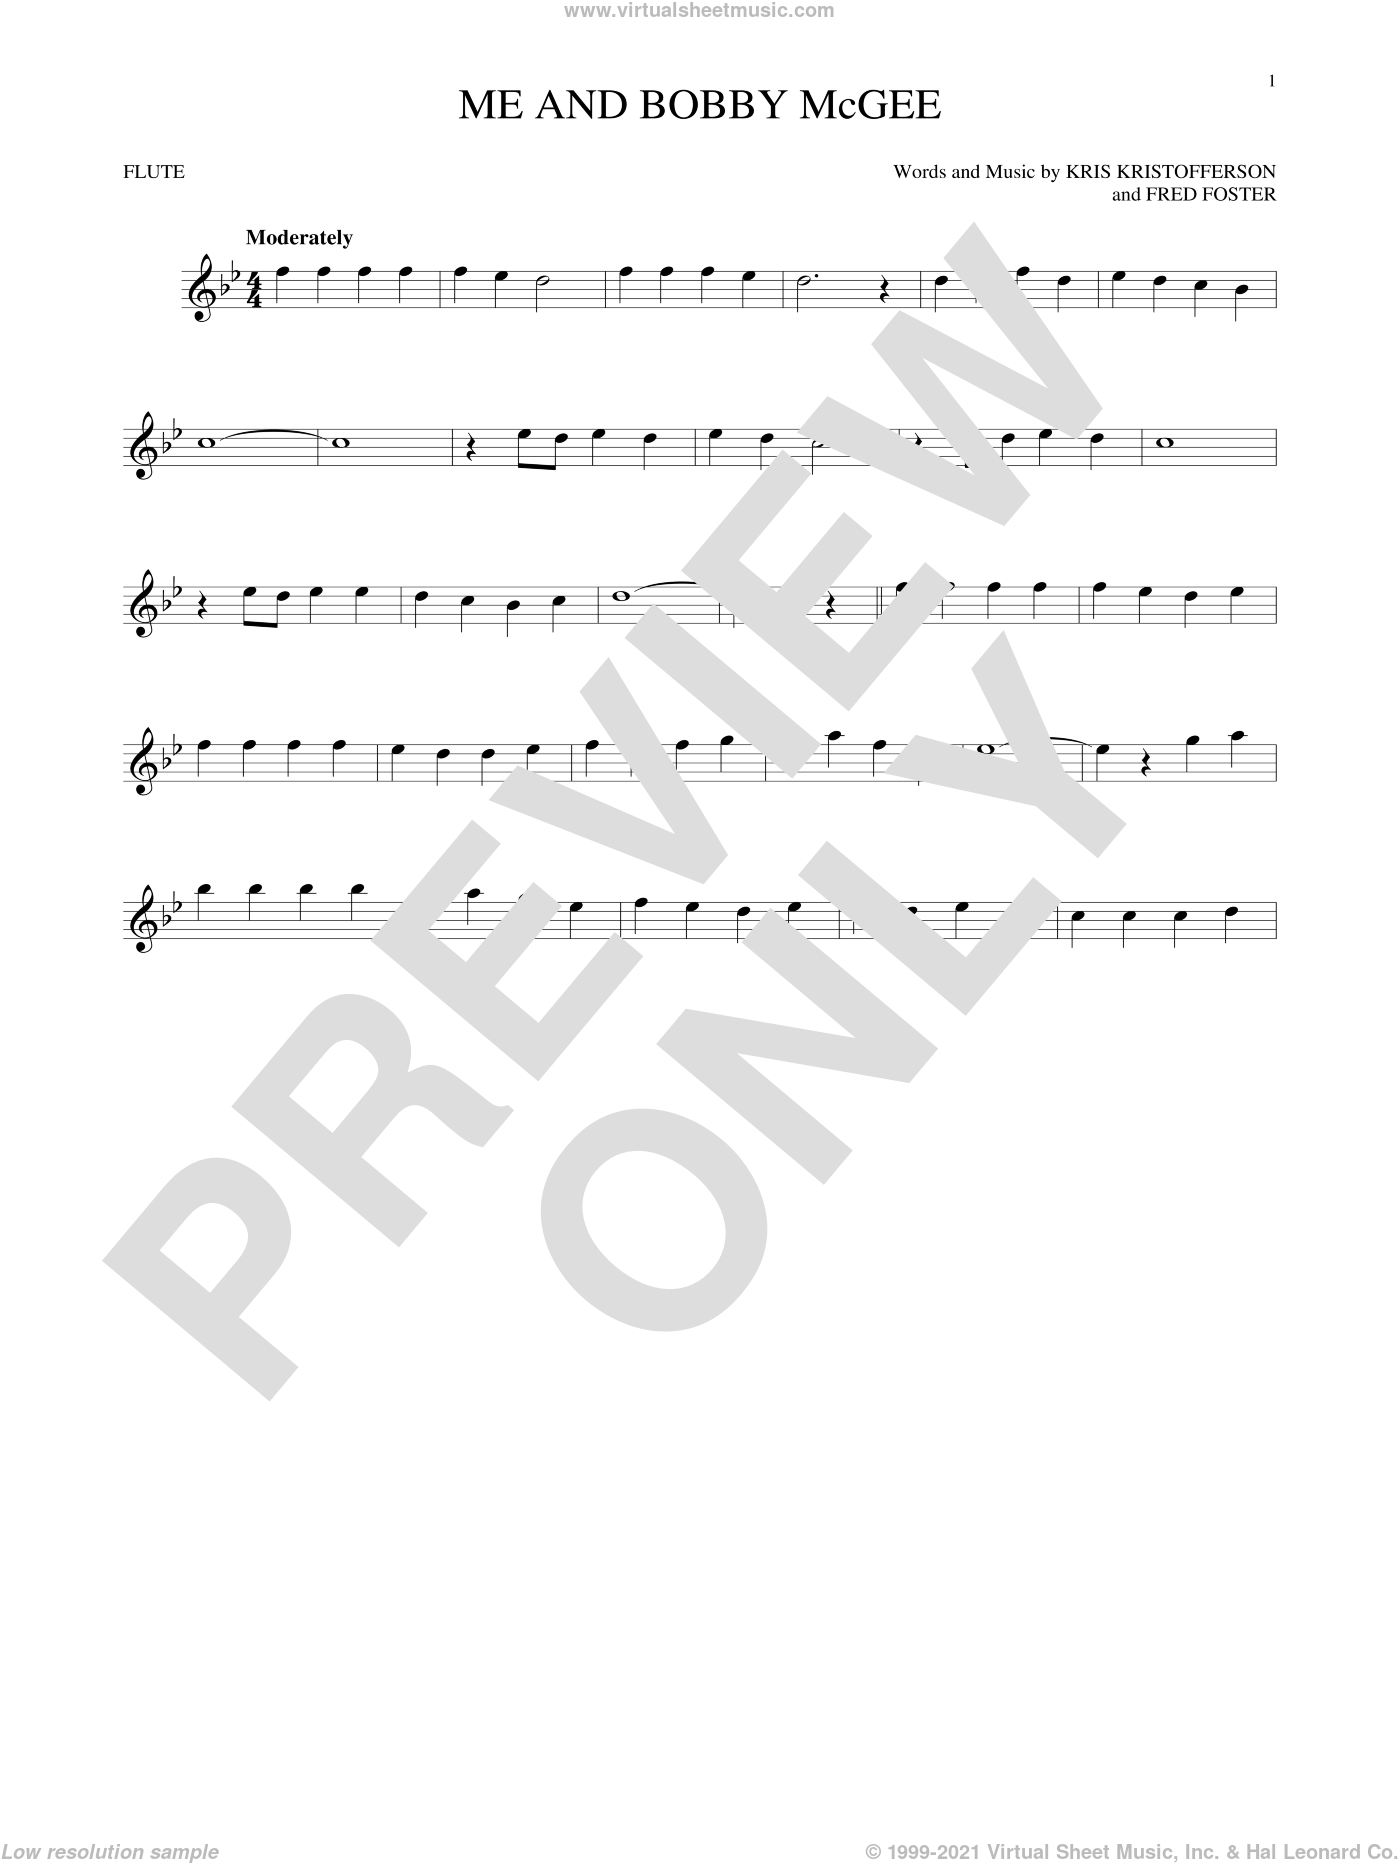 Me And Bobby McGee sheet music for flute solo by Kris Kristofferson, Janis Joplin, Roger Miller and Fred Foster, intermediate skill level